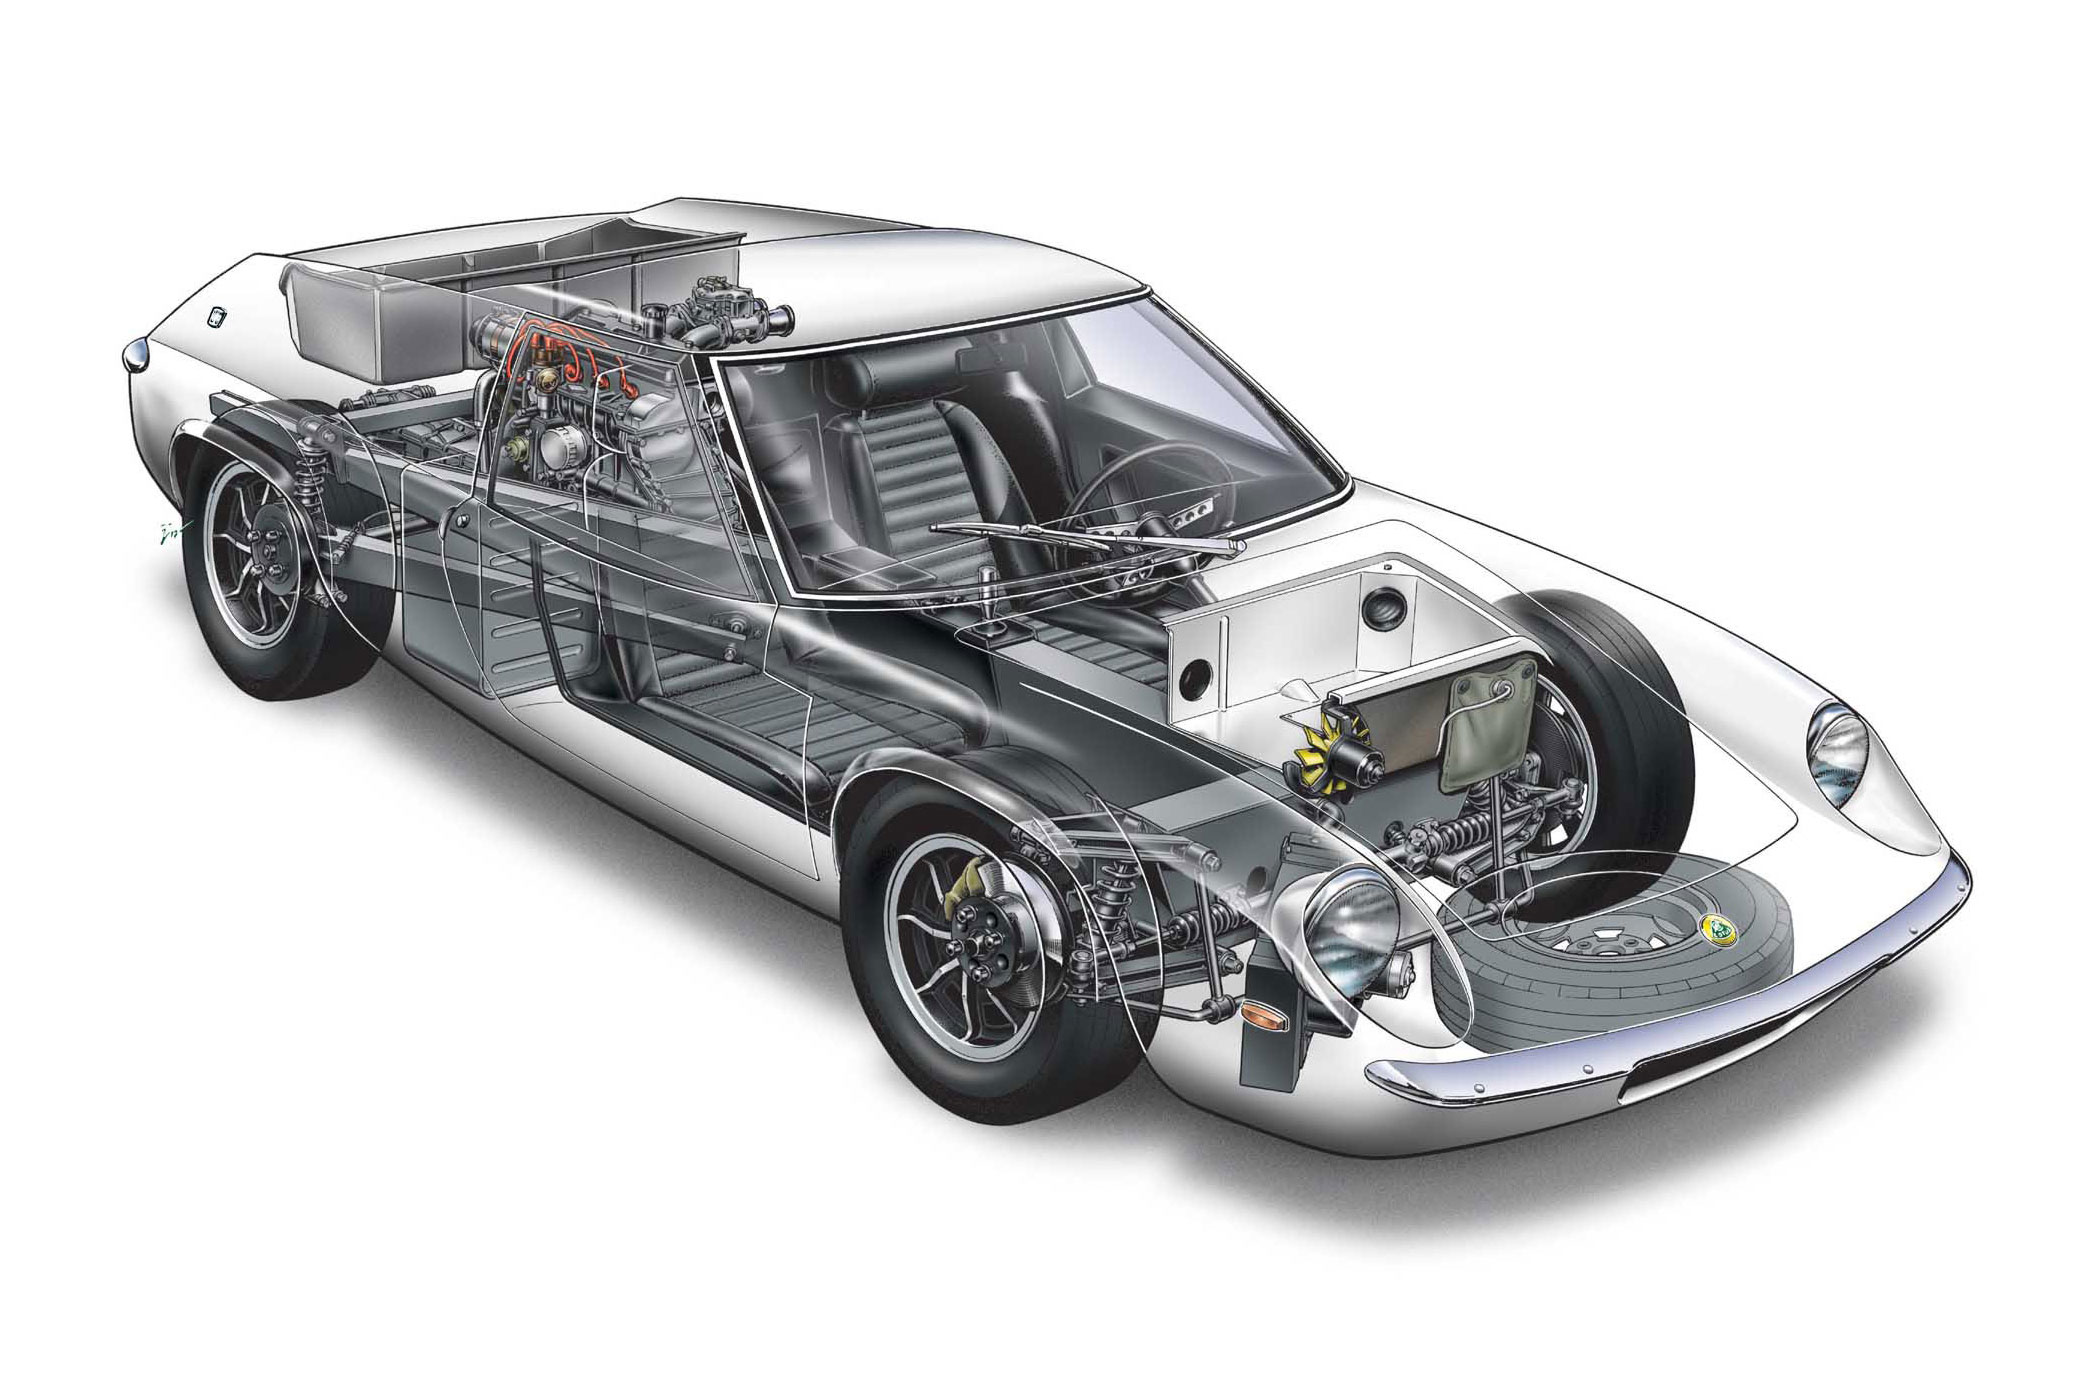 Lotus Europa S1 cutaway drawing